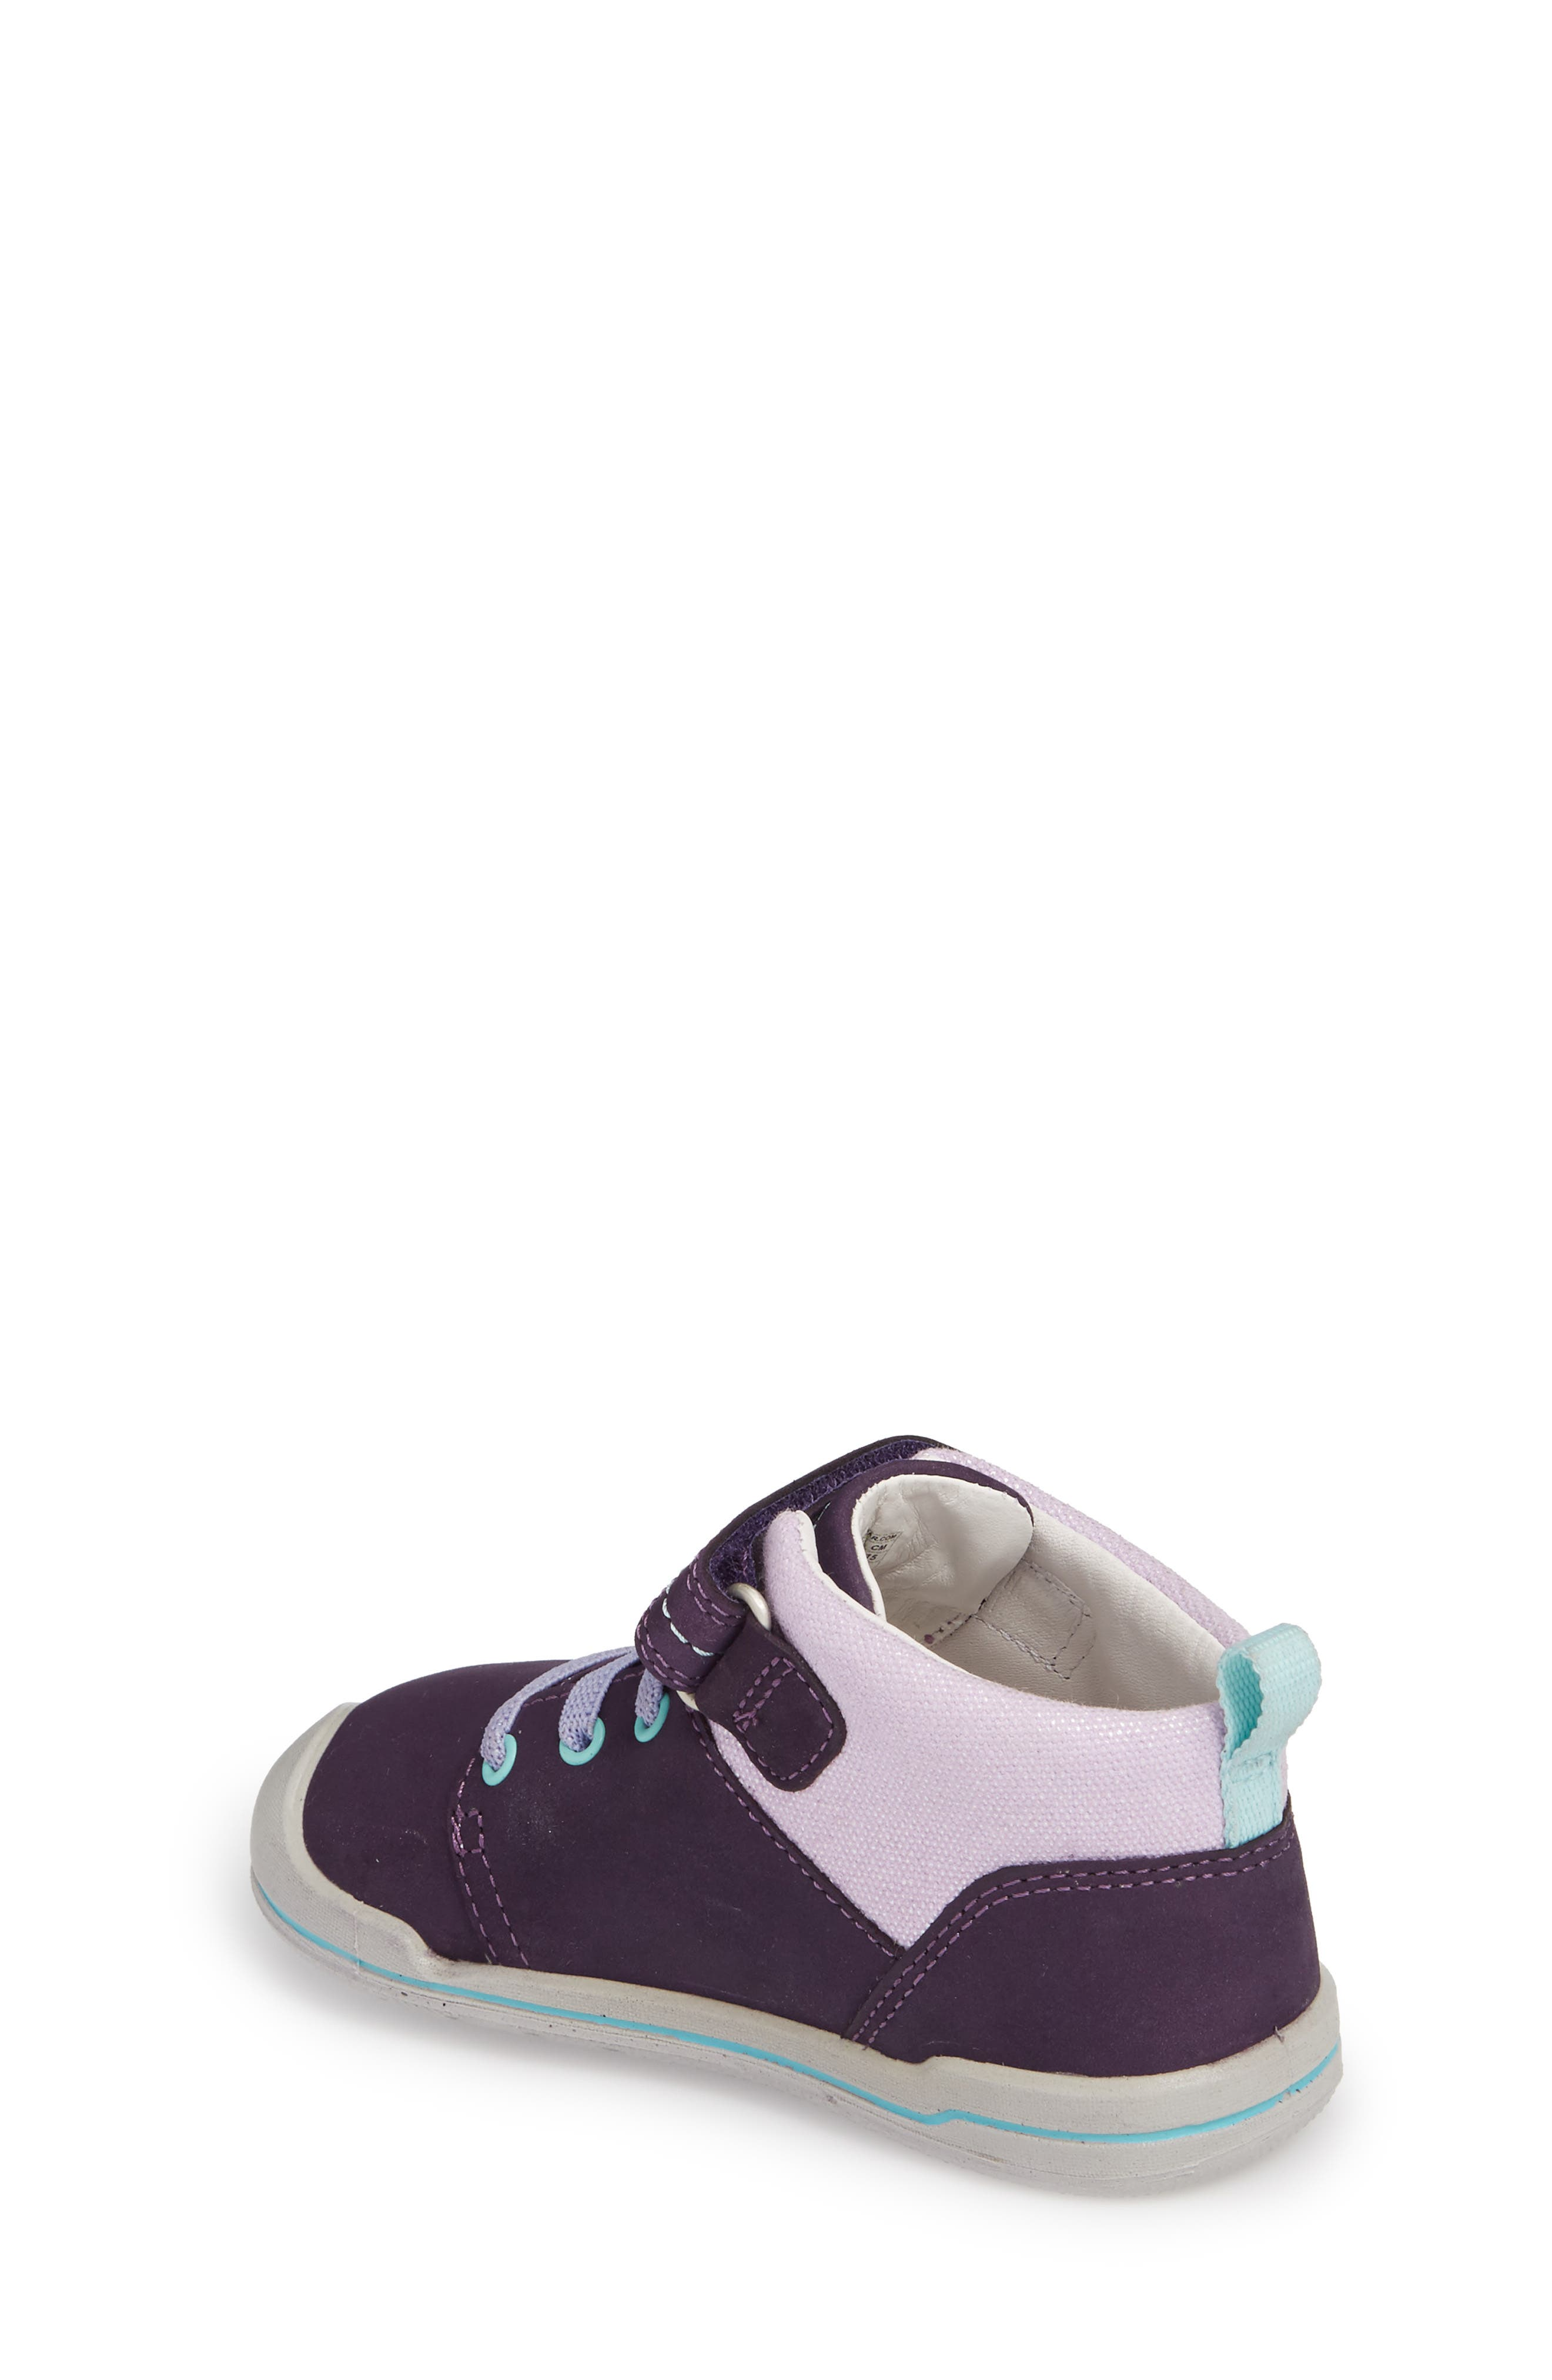 Sprout Mid Sneaker,                             Alternate thumbnail 2, color,                             Purple / Sweet Lavender